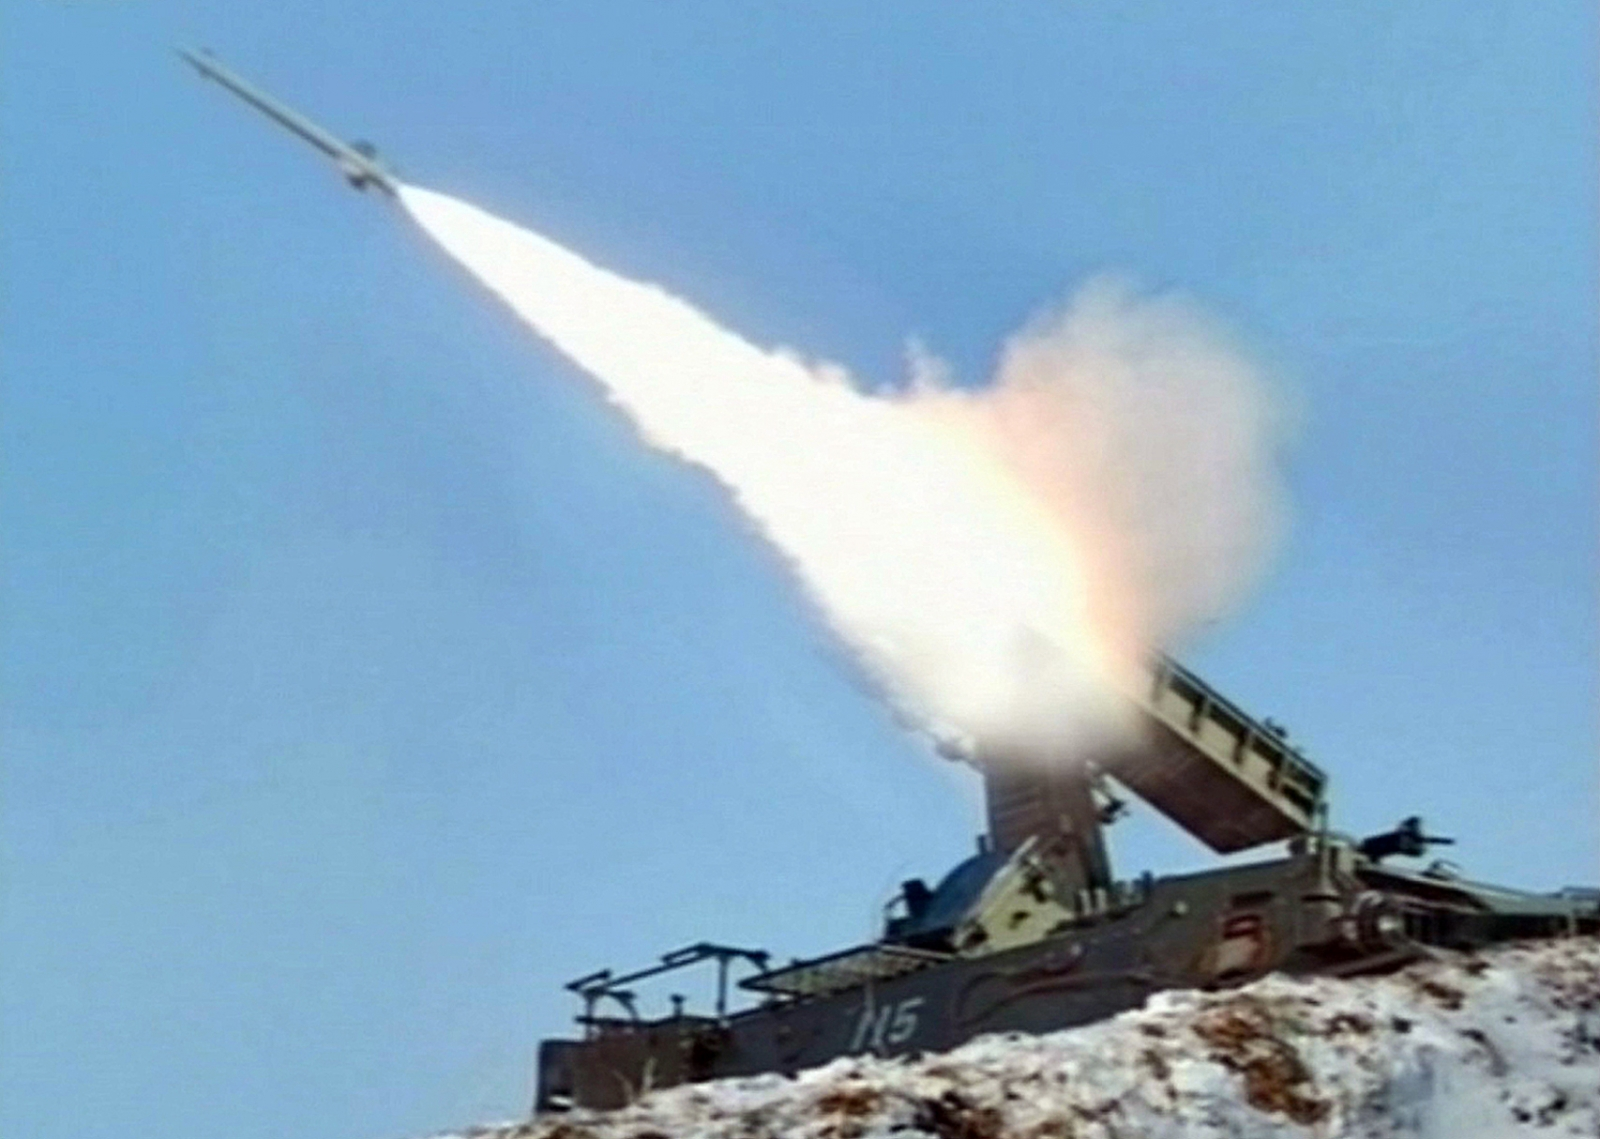 Image from North Korean television shows a rocket being fired in military exercises. (Getty)